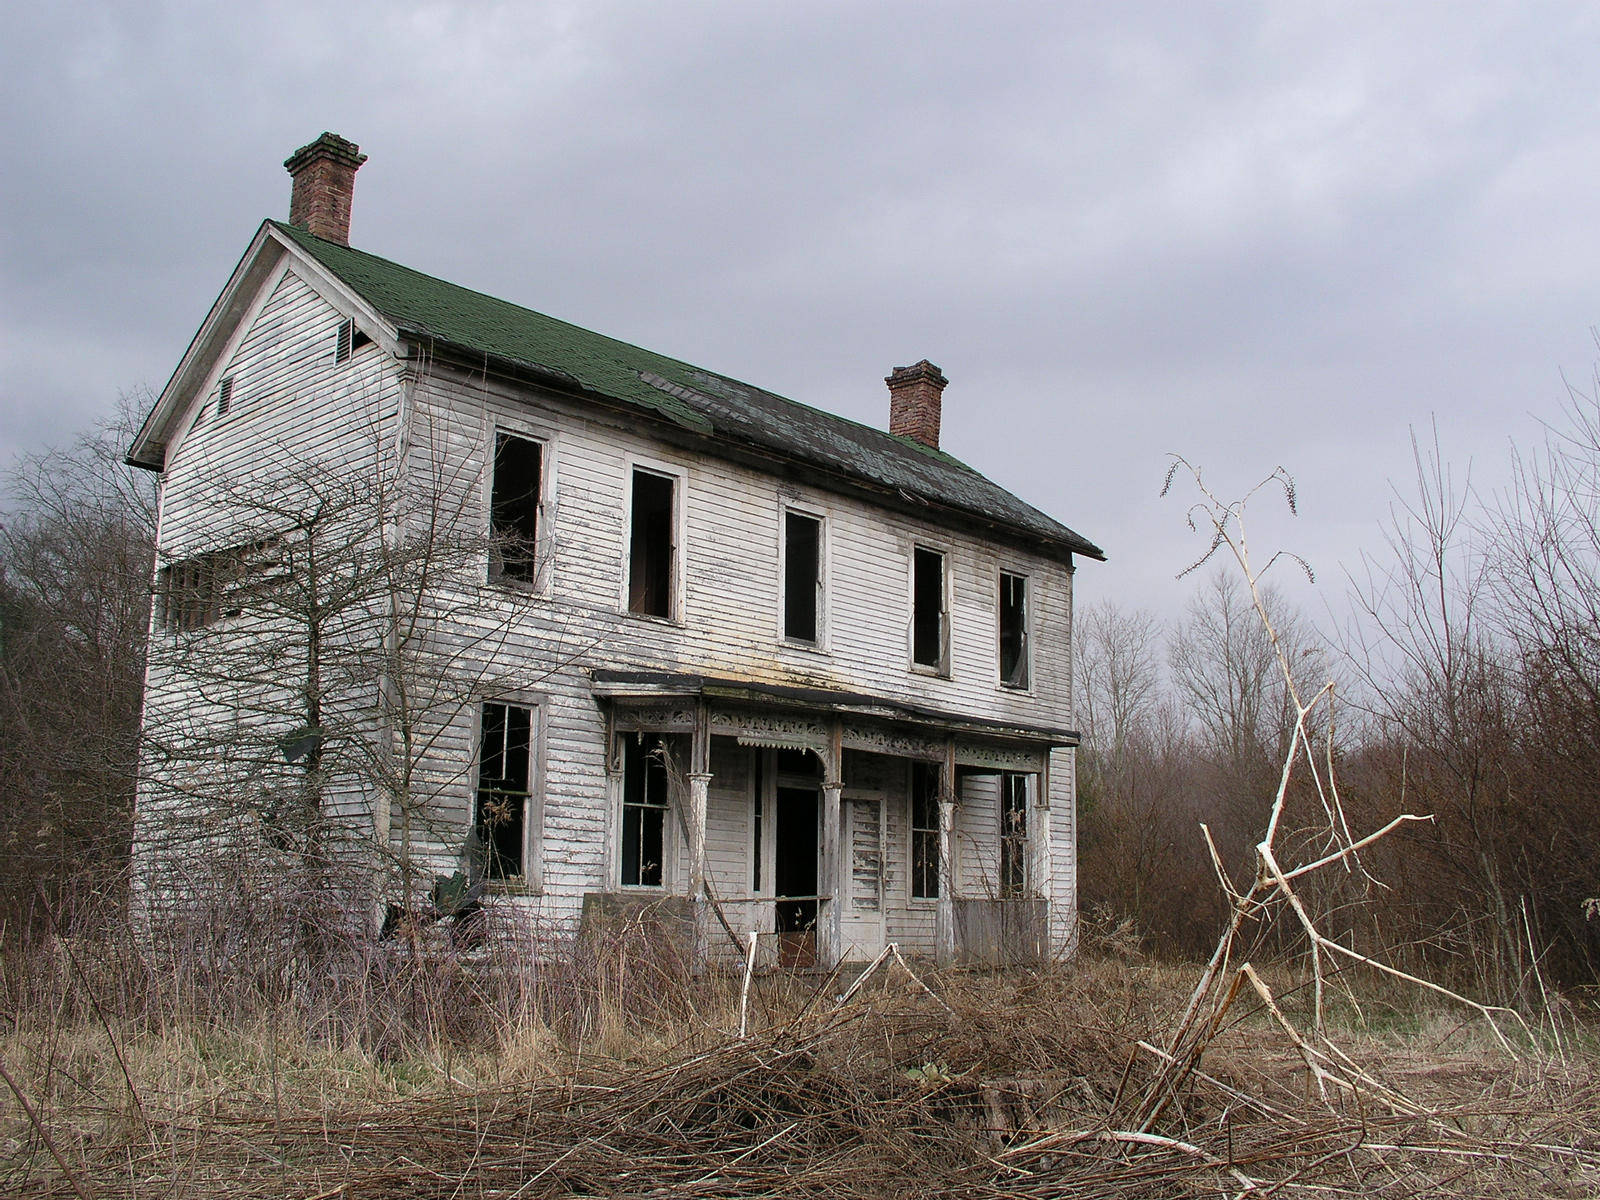 S s old house 7 by shudder stock on deviantart for House of classic